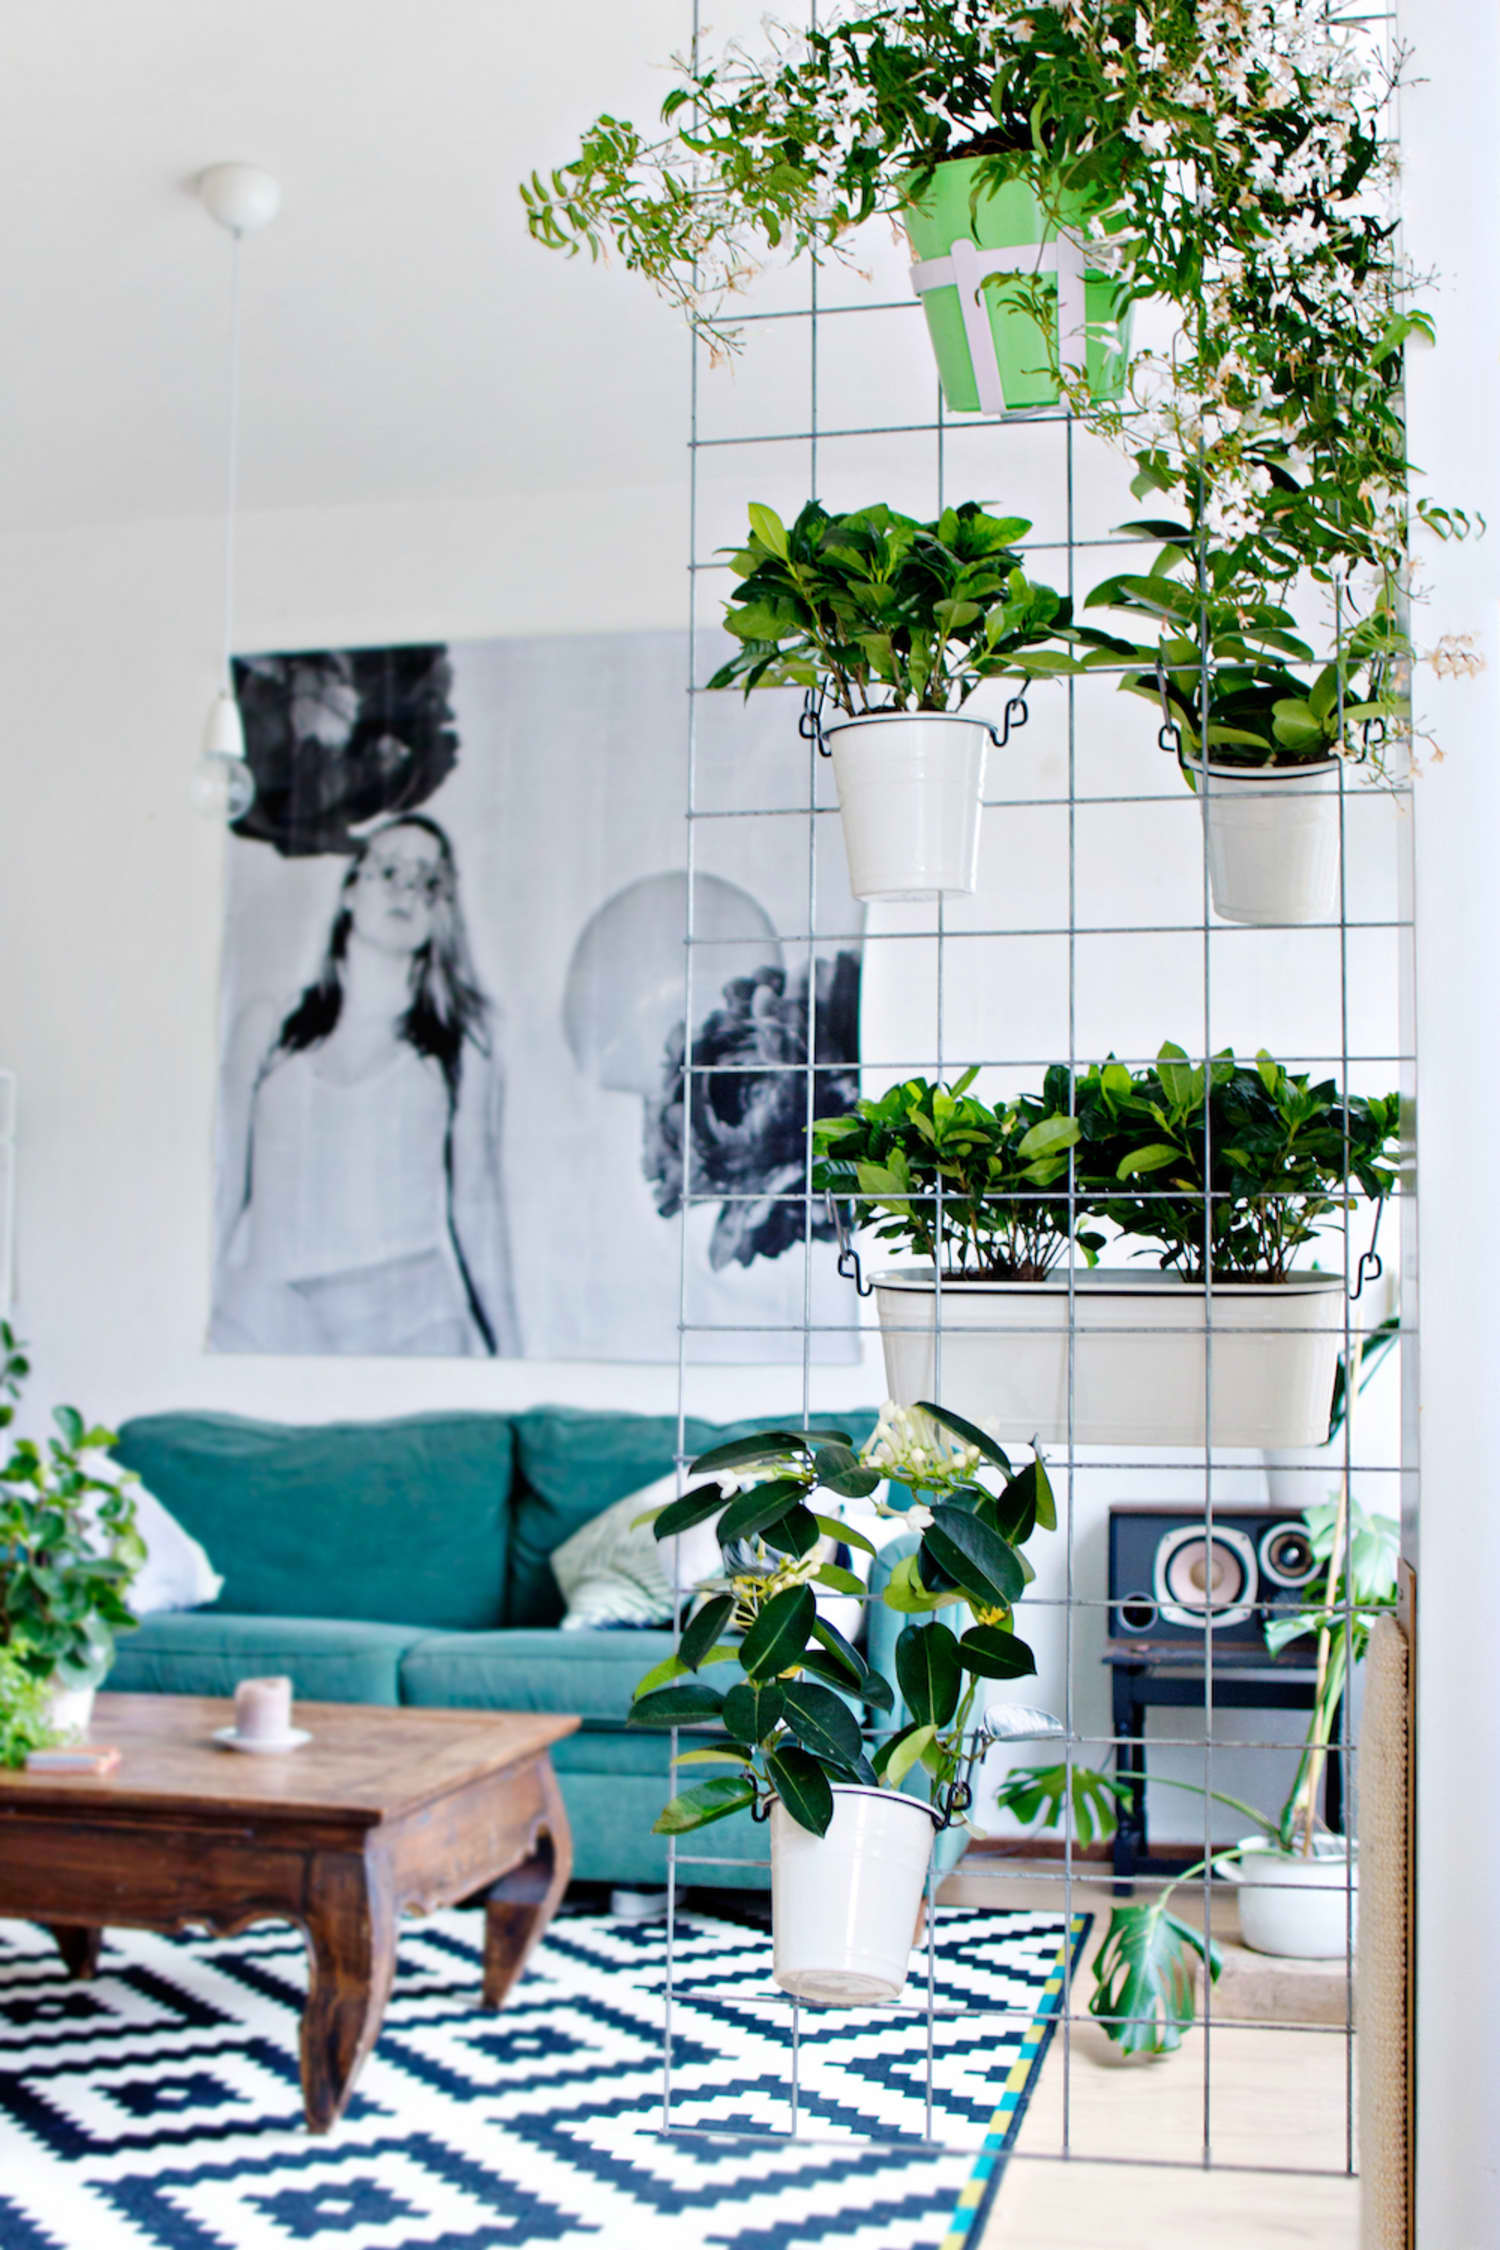 15 Indoor Garden Ideas For Wannabe Gardeners In Small